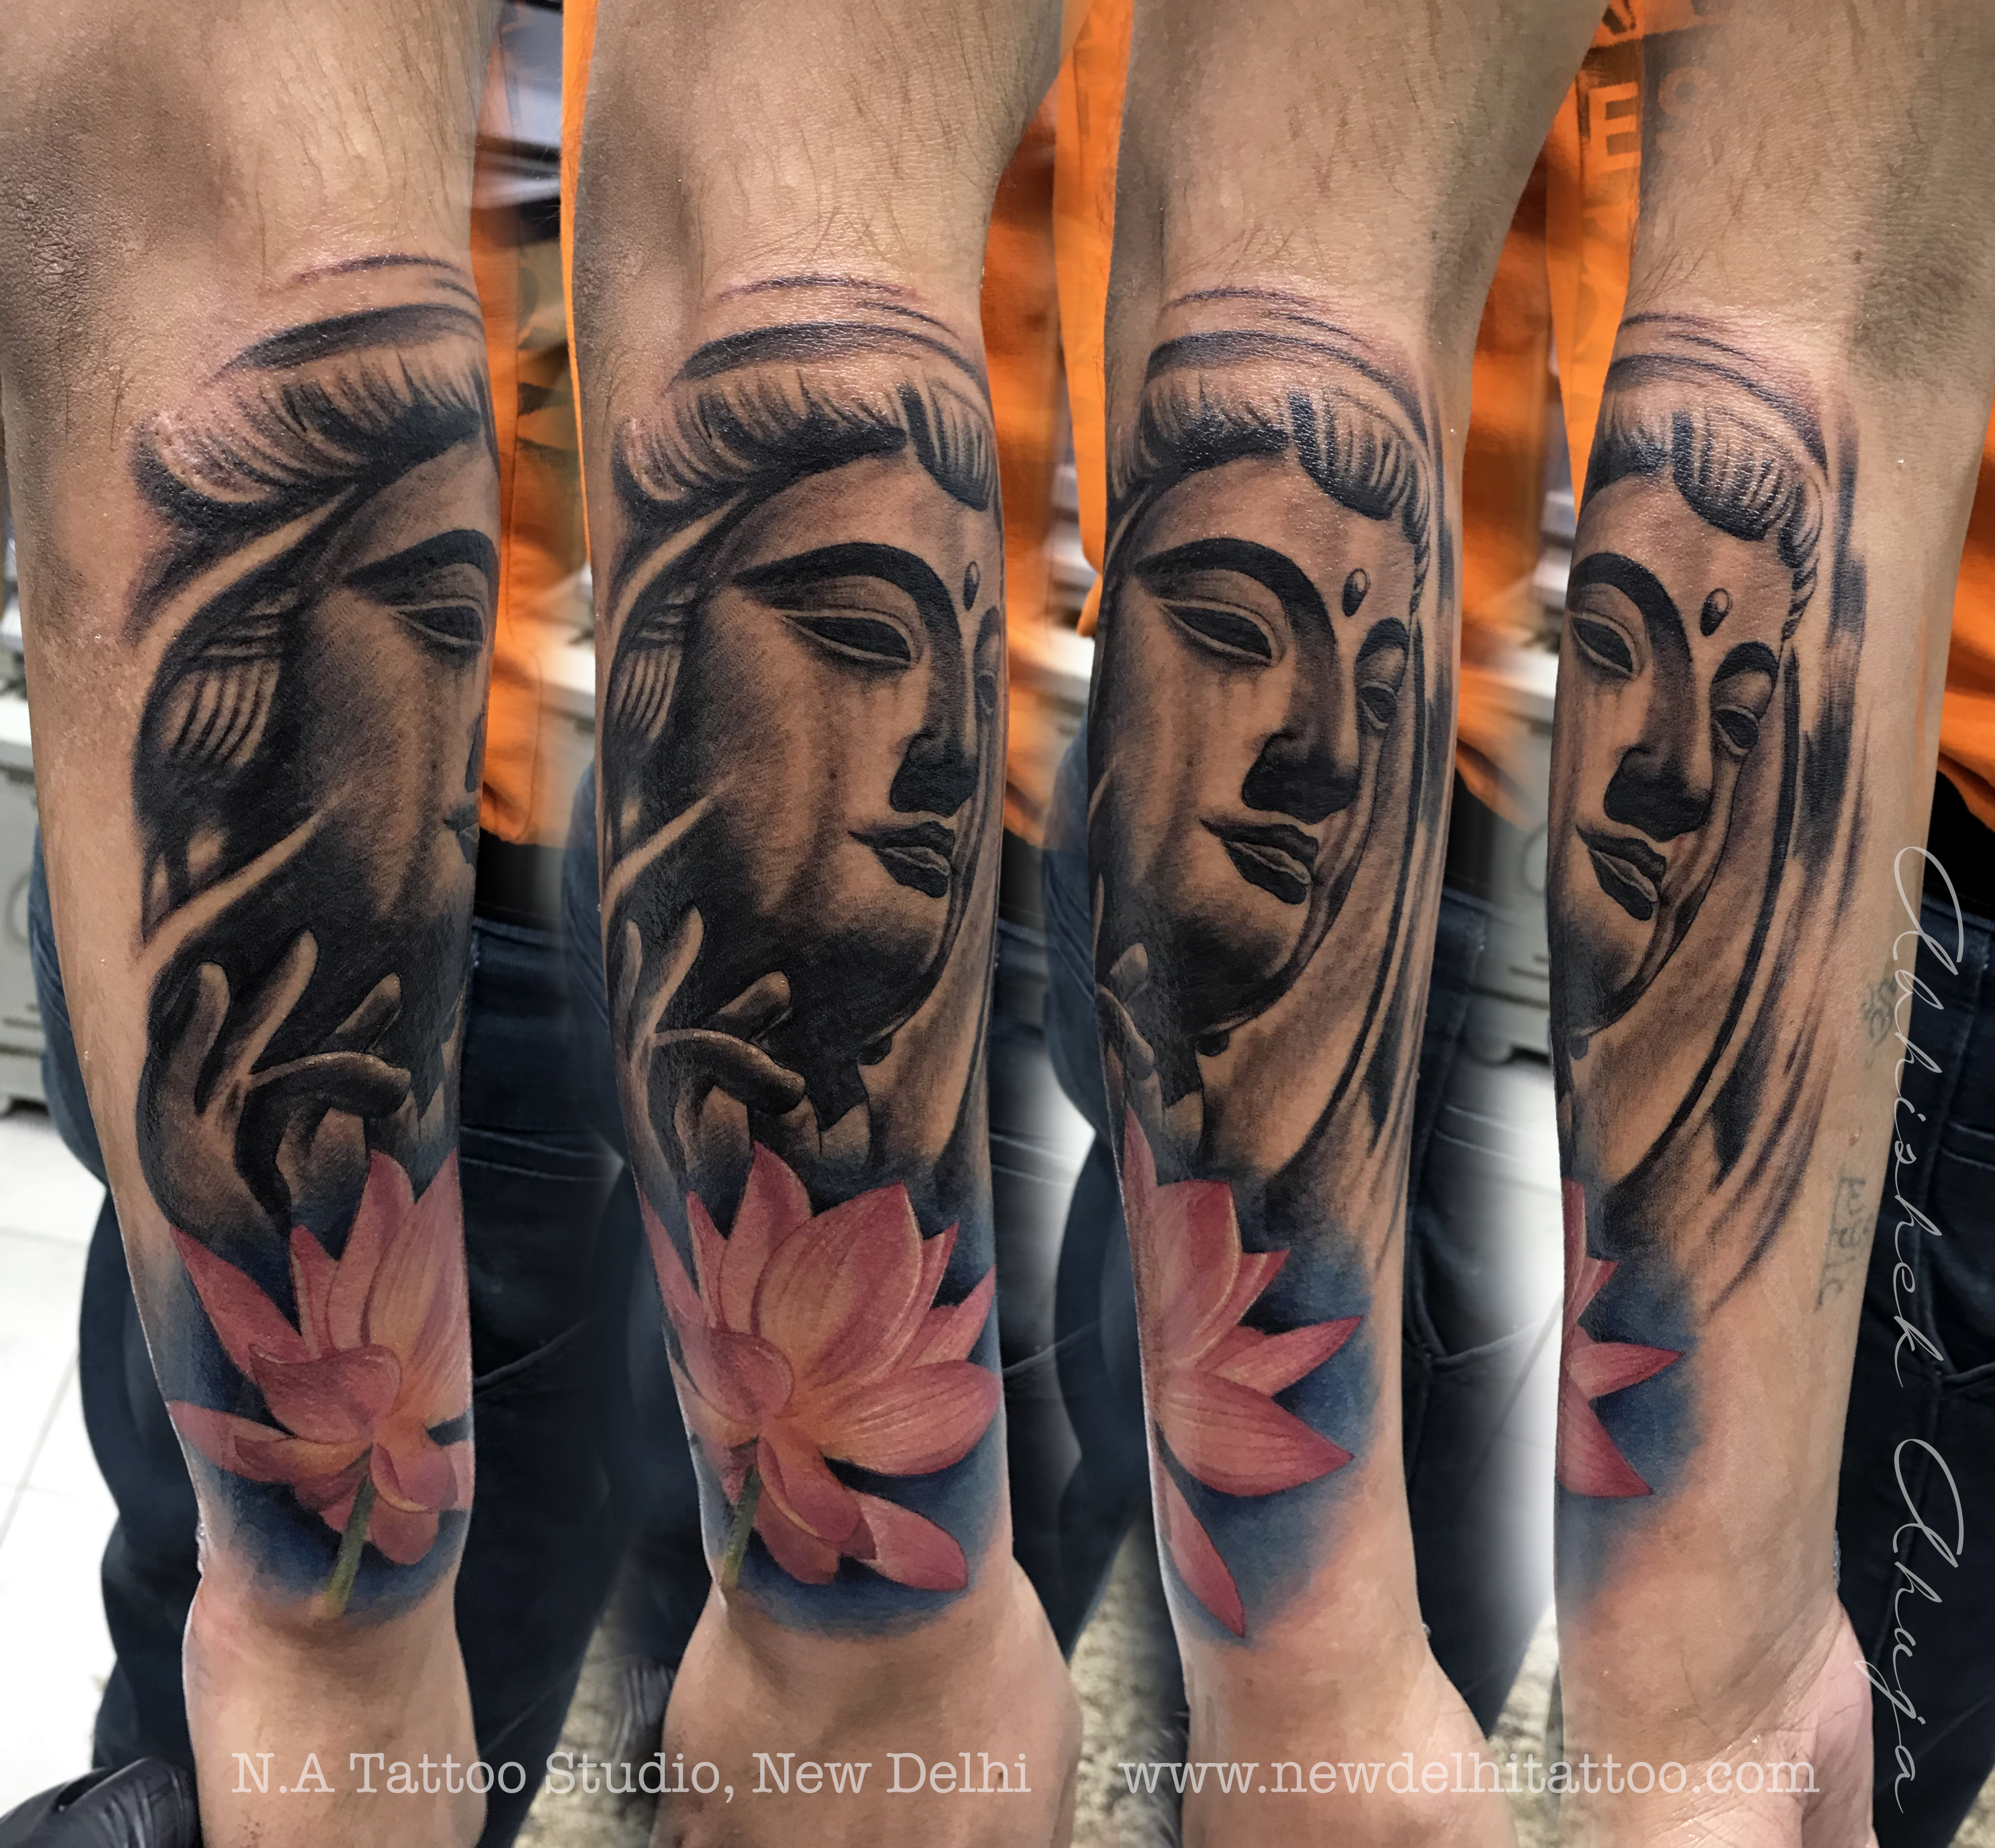 Buddha Lotus Tattoo New Delhi Tattoo